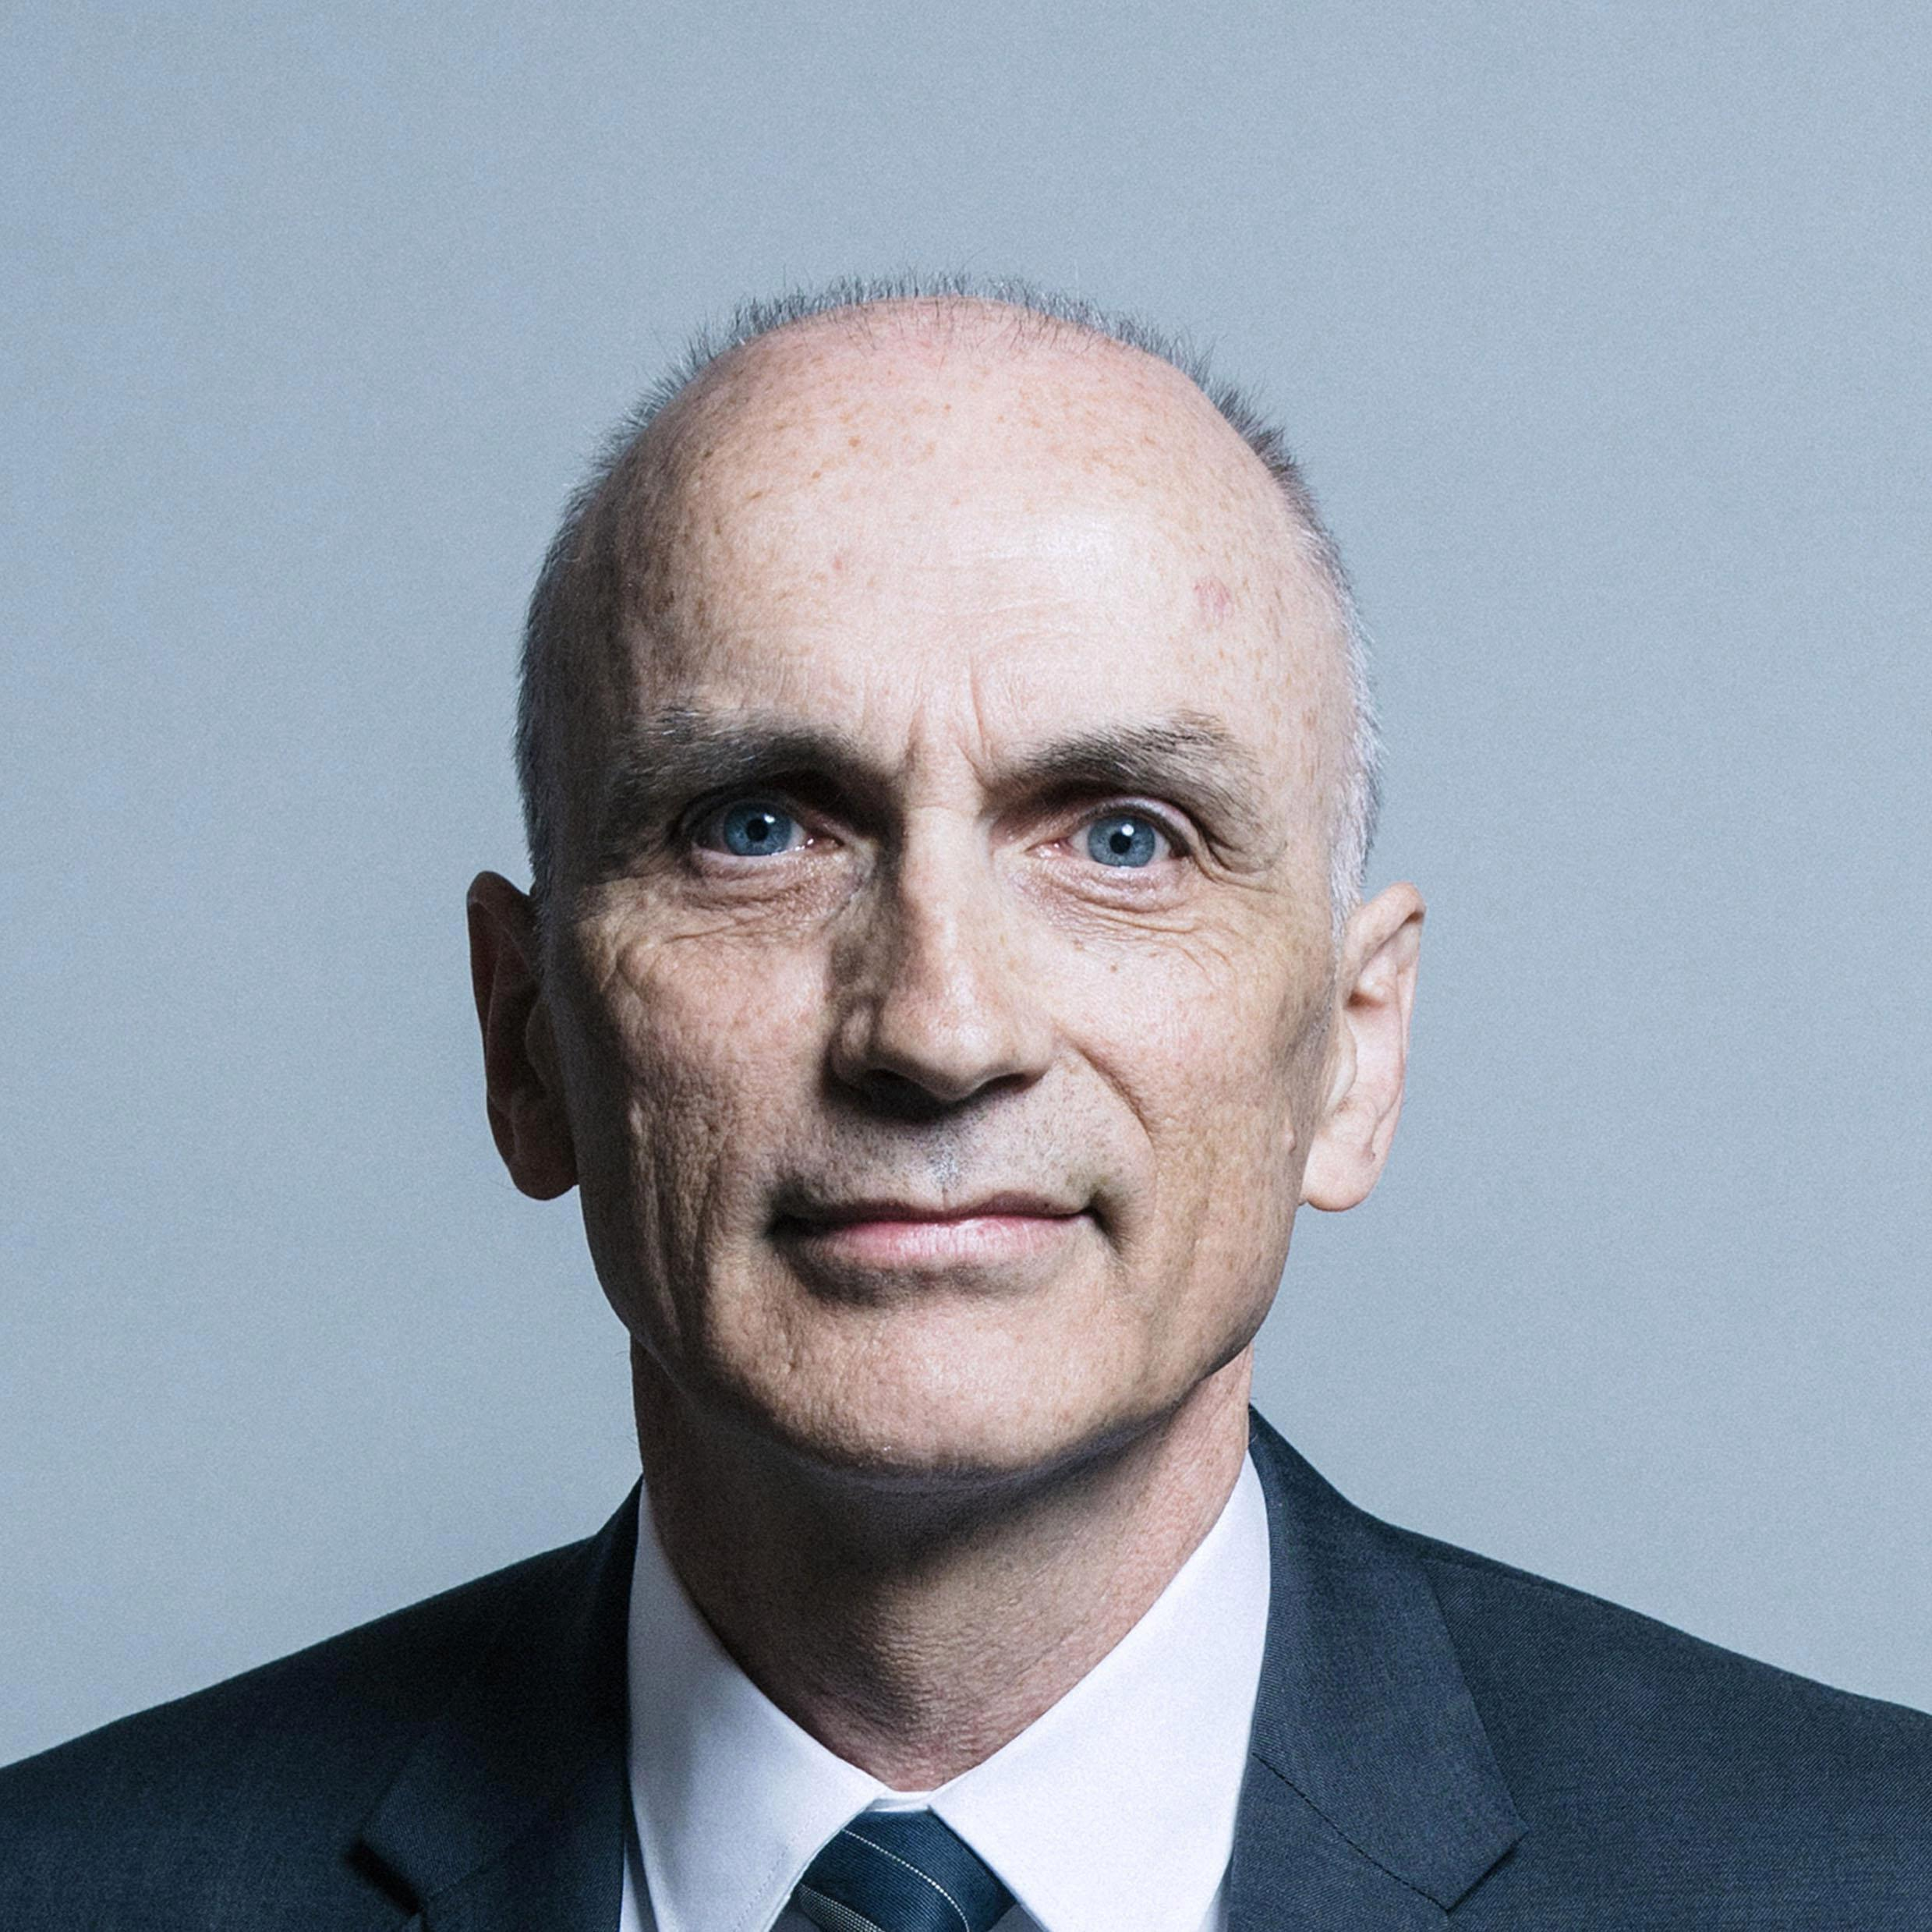 Top Corbynista Chris Williamson ousted from Labour's front bench after calling for council tax to be doubled on big homes